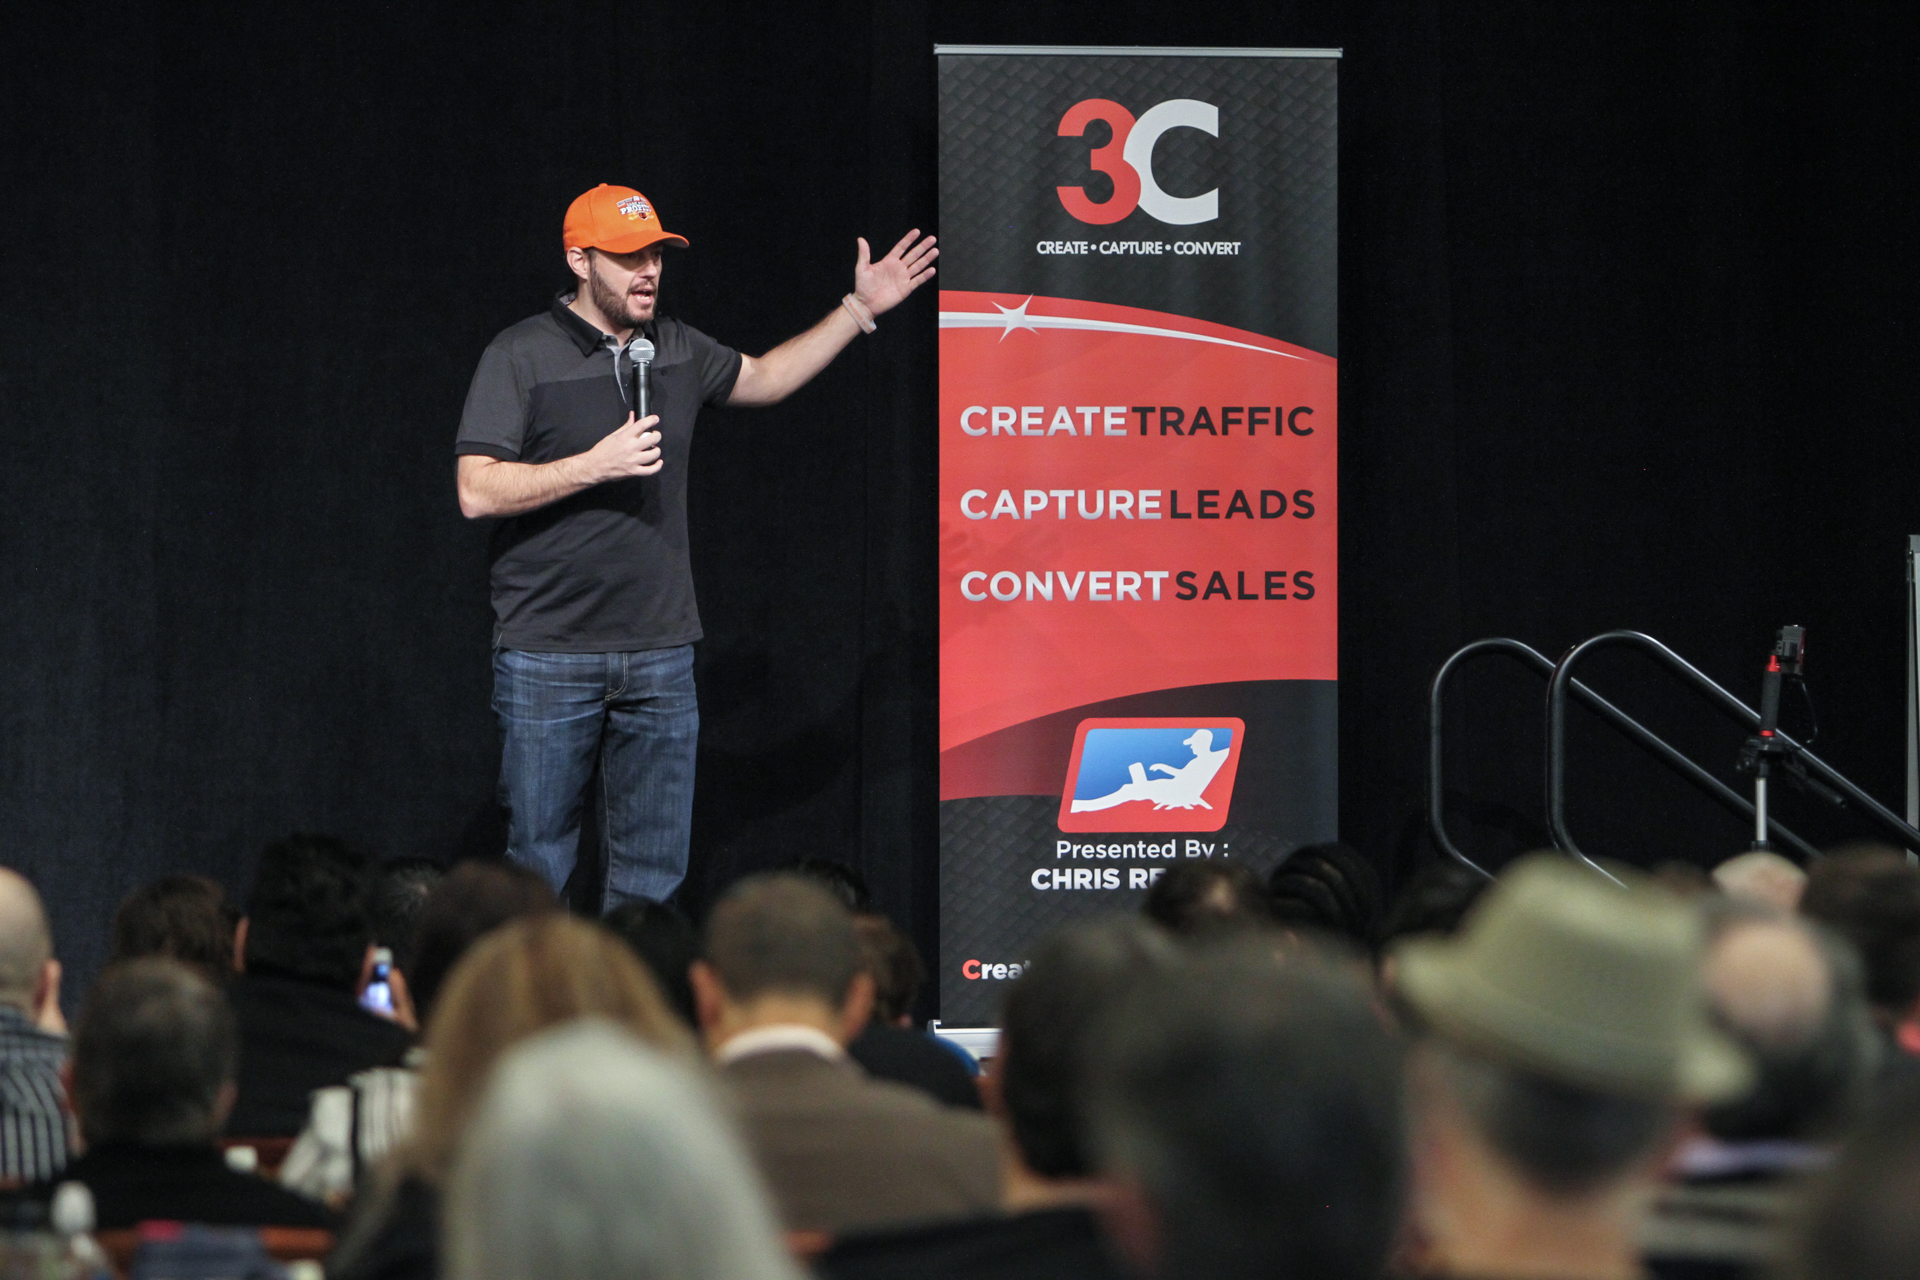 3c-conference-chris-record-tracy-lee-event-conference-photography-las-vegas-125